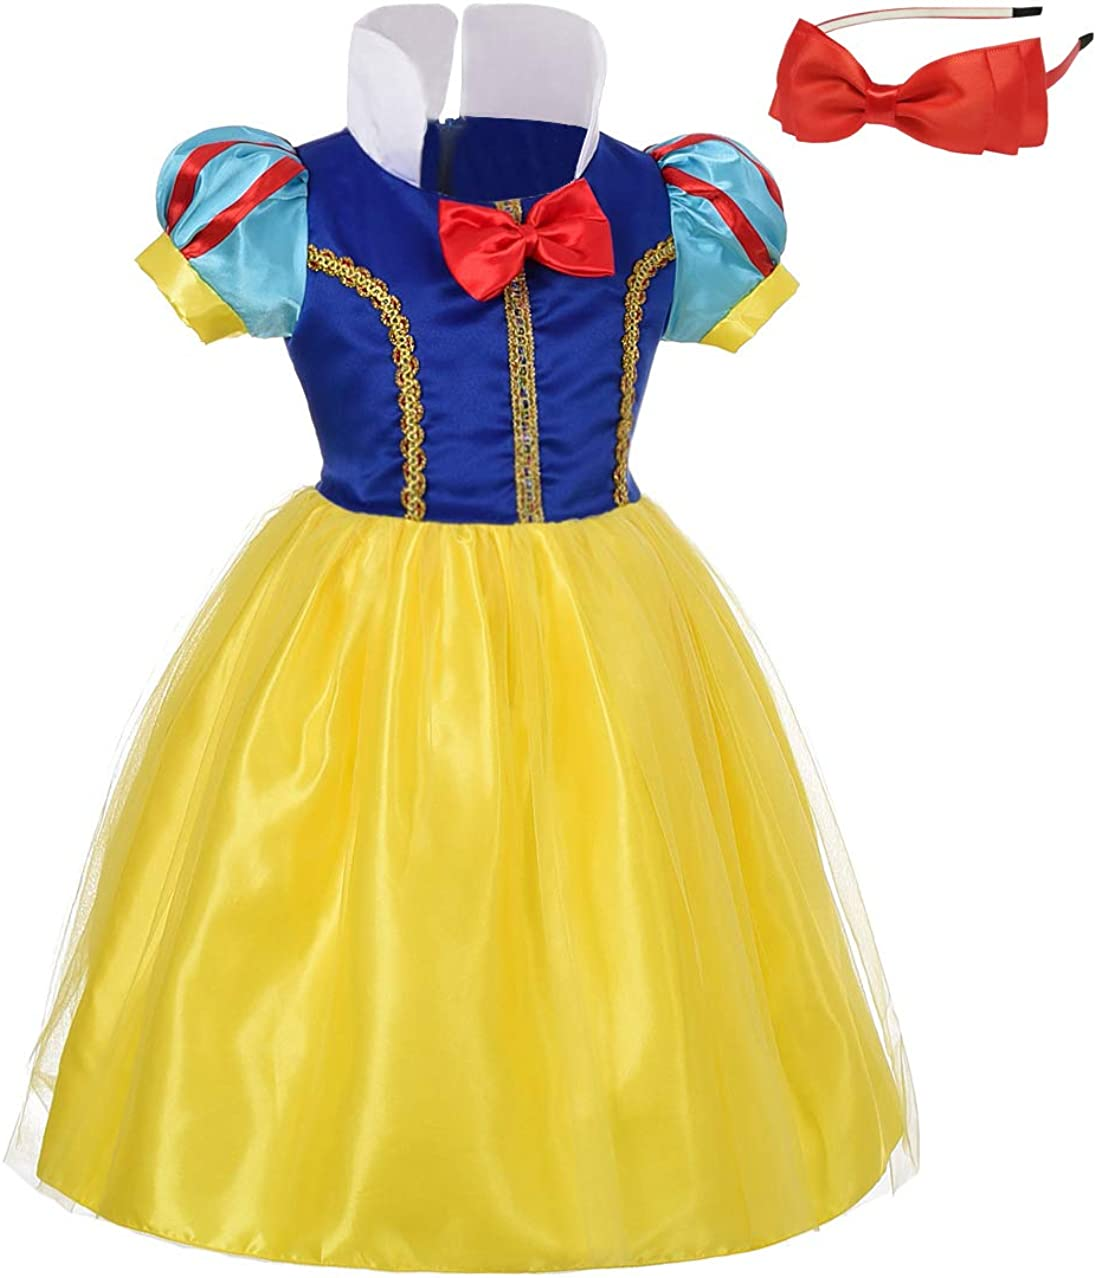 Lito Angels Girls Princess Costume Fancy Dresses Up Halloween Outfit with Headband